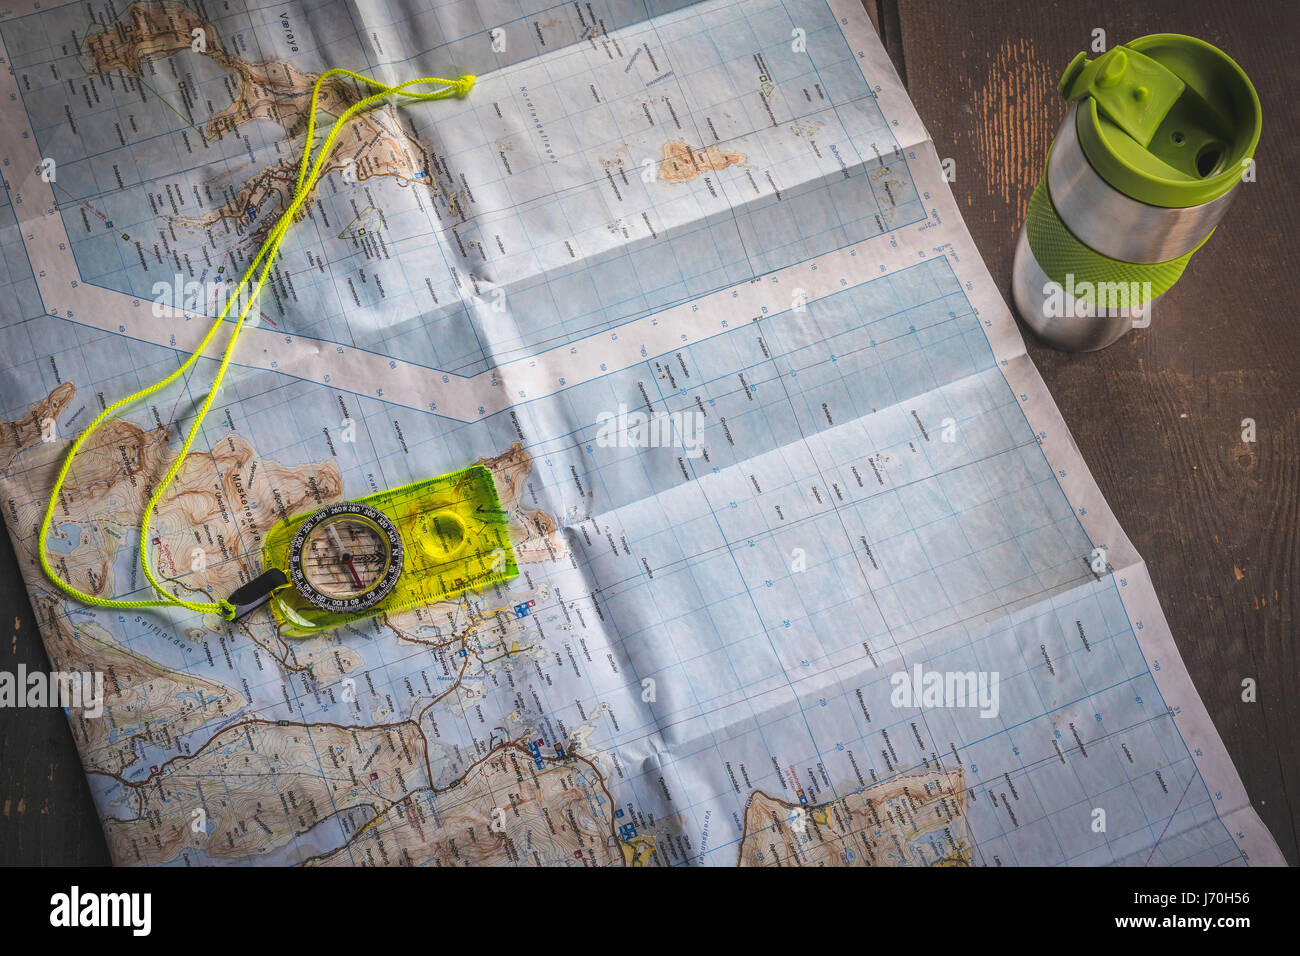 Fluorescent yellow compass lying on map of Lofoten islands, Norway on wooden table next to silver thermal mug - Stock Image